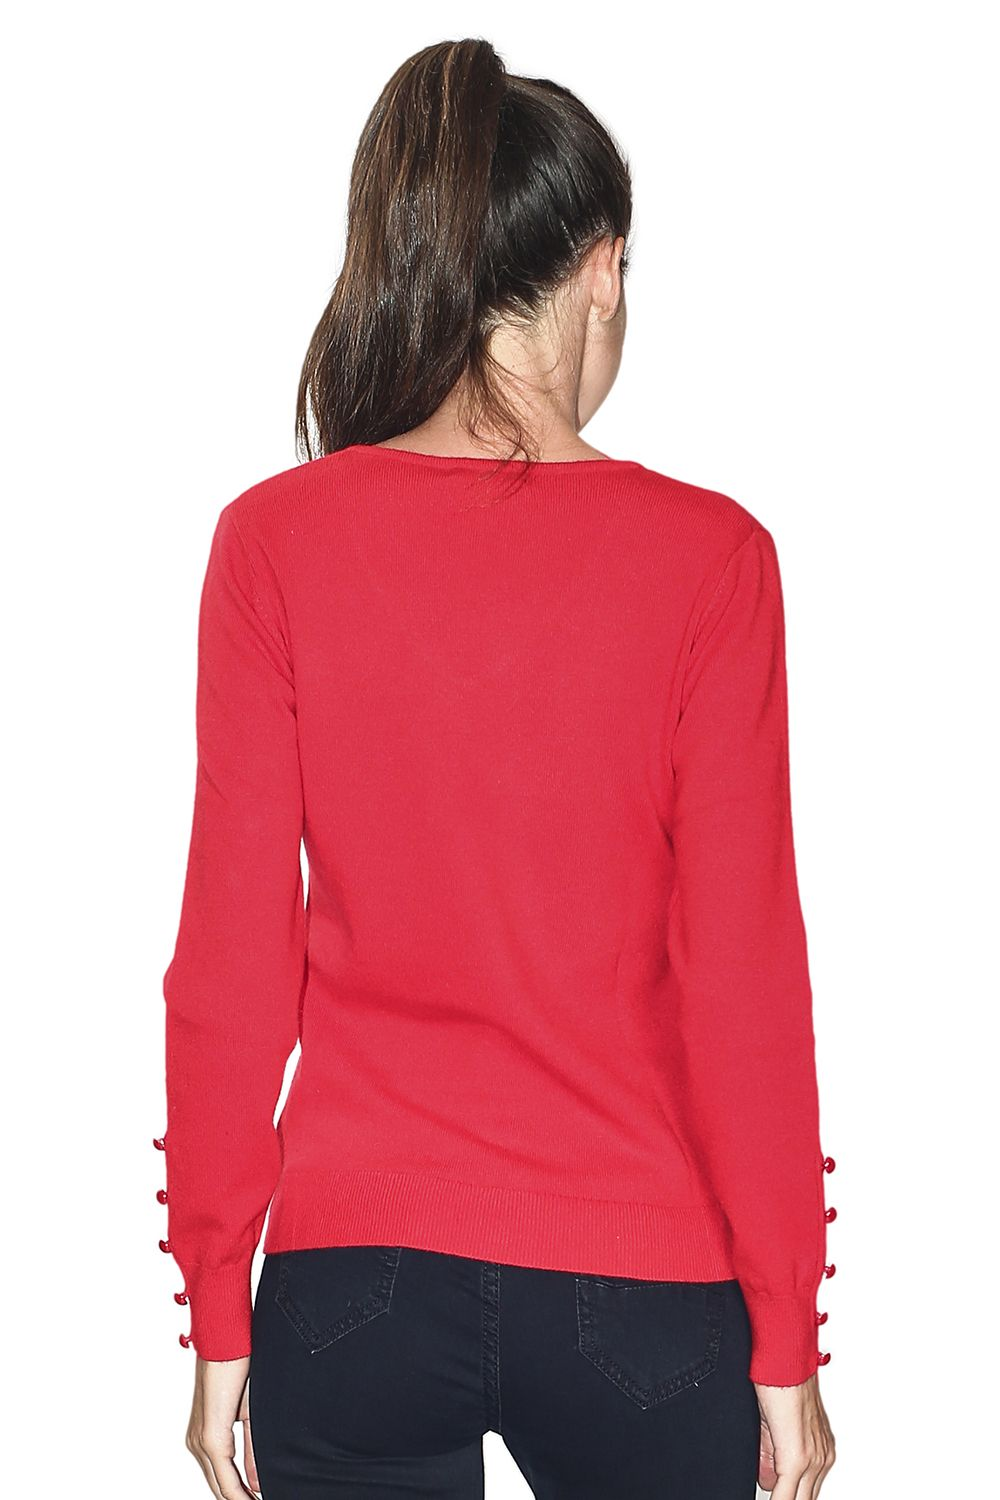 Assuili V-neck Sweater with Buttoned Sleeves in Red